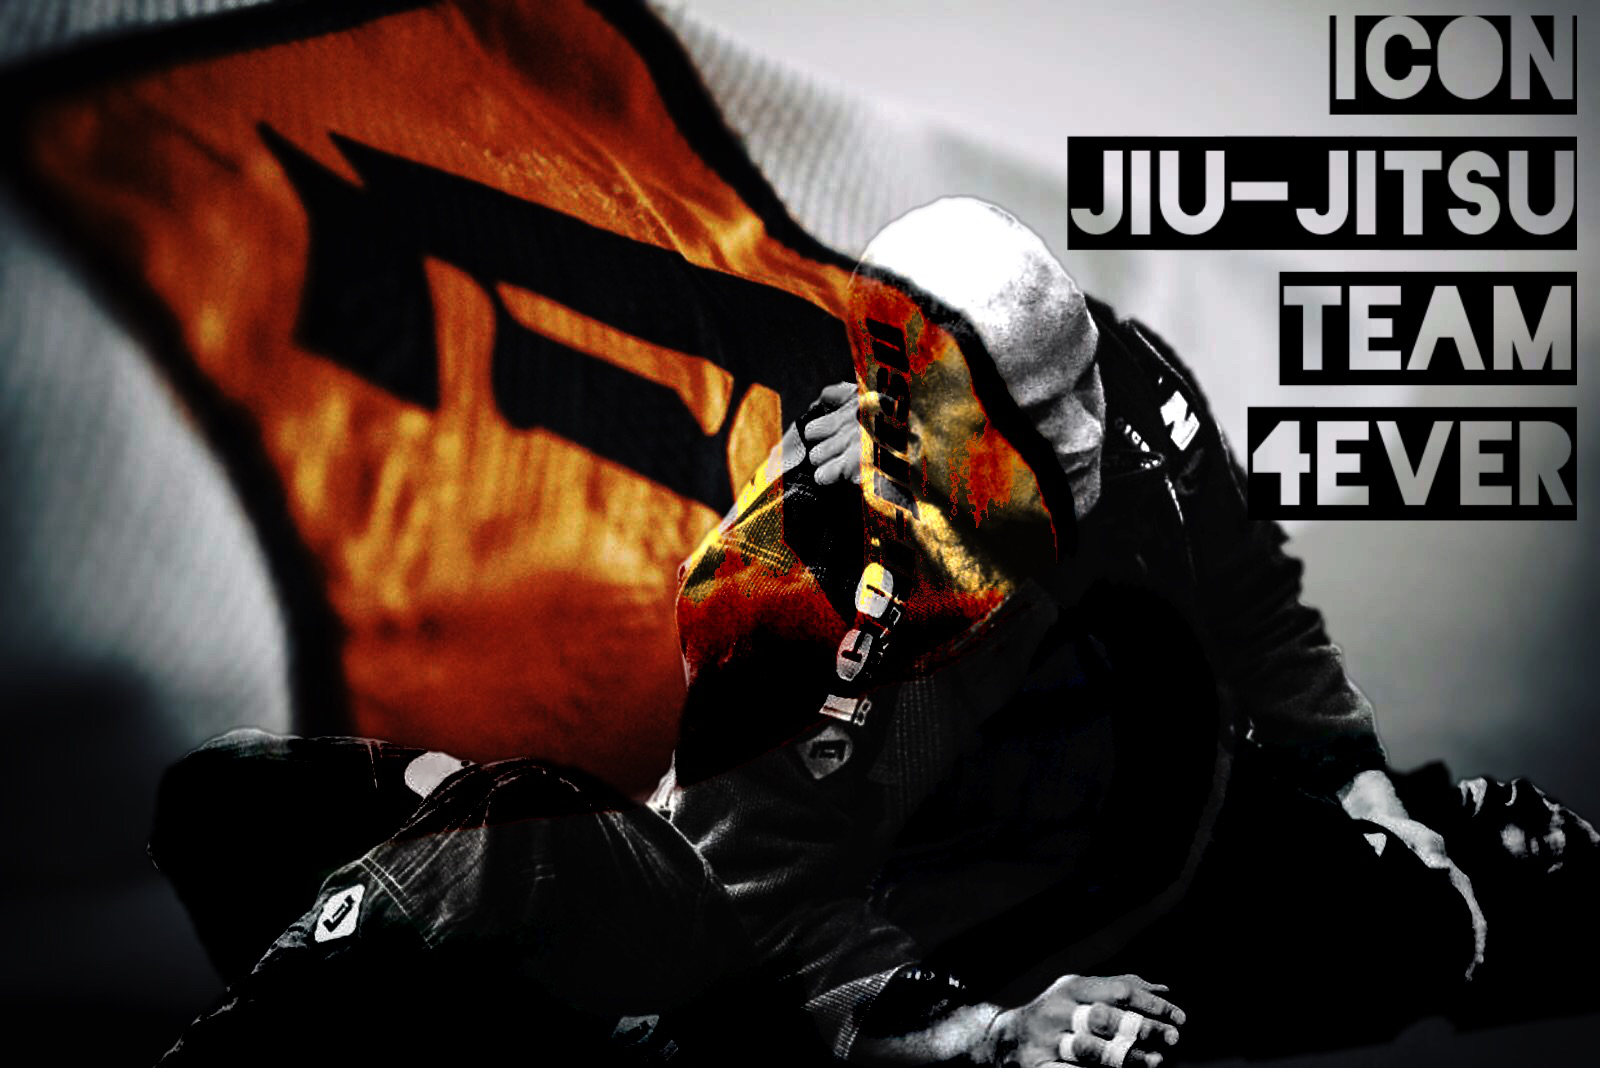 Icon Jiu-Jitsu 4EVER